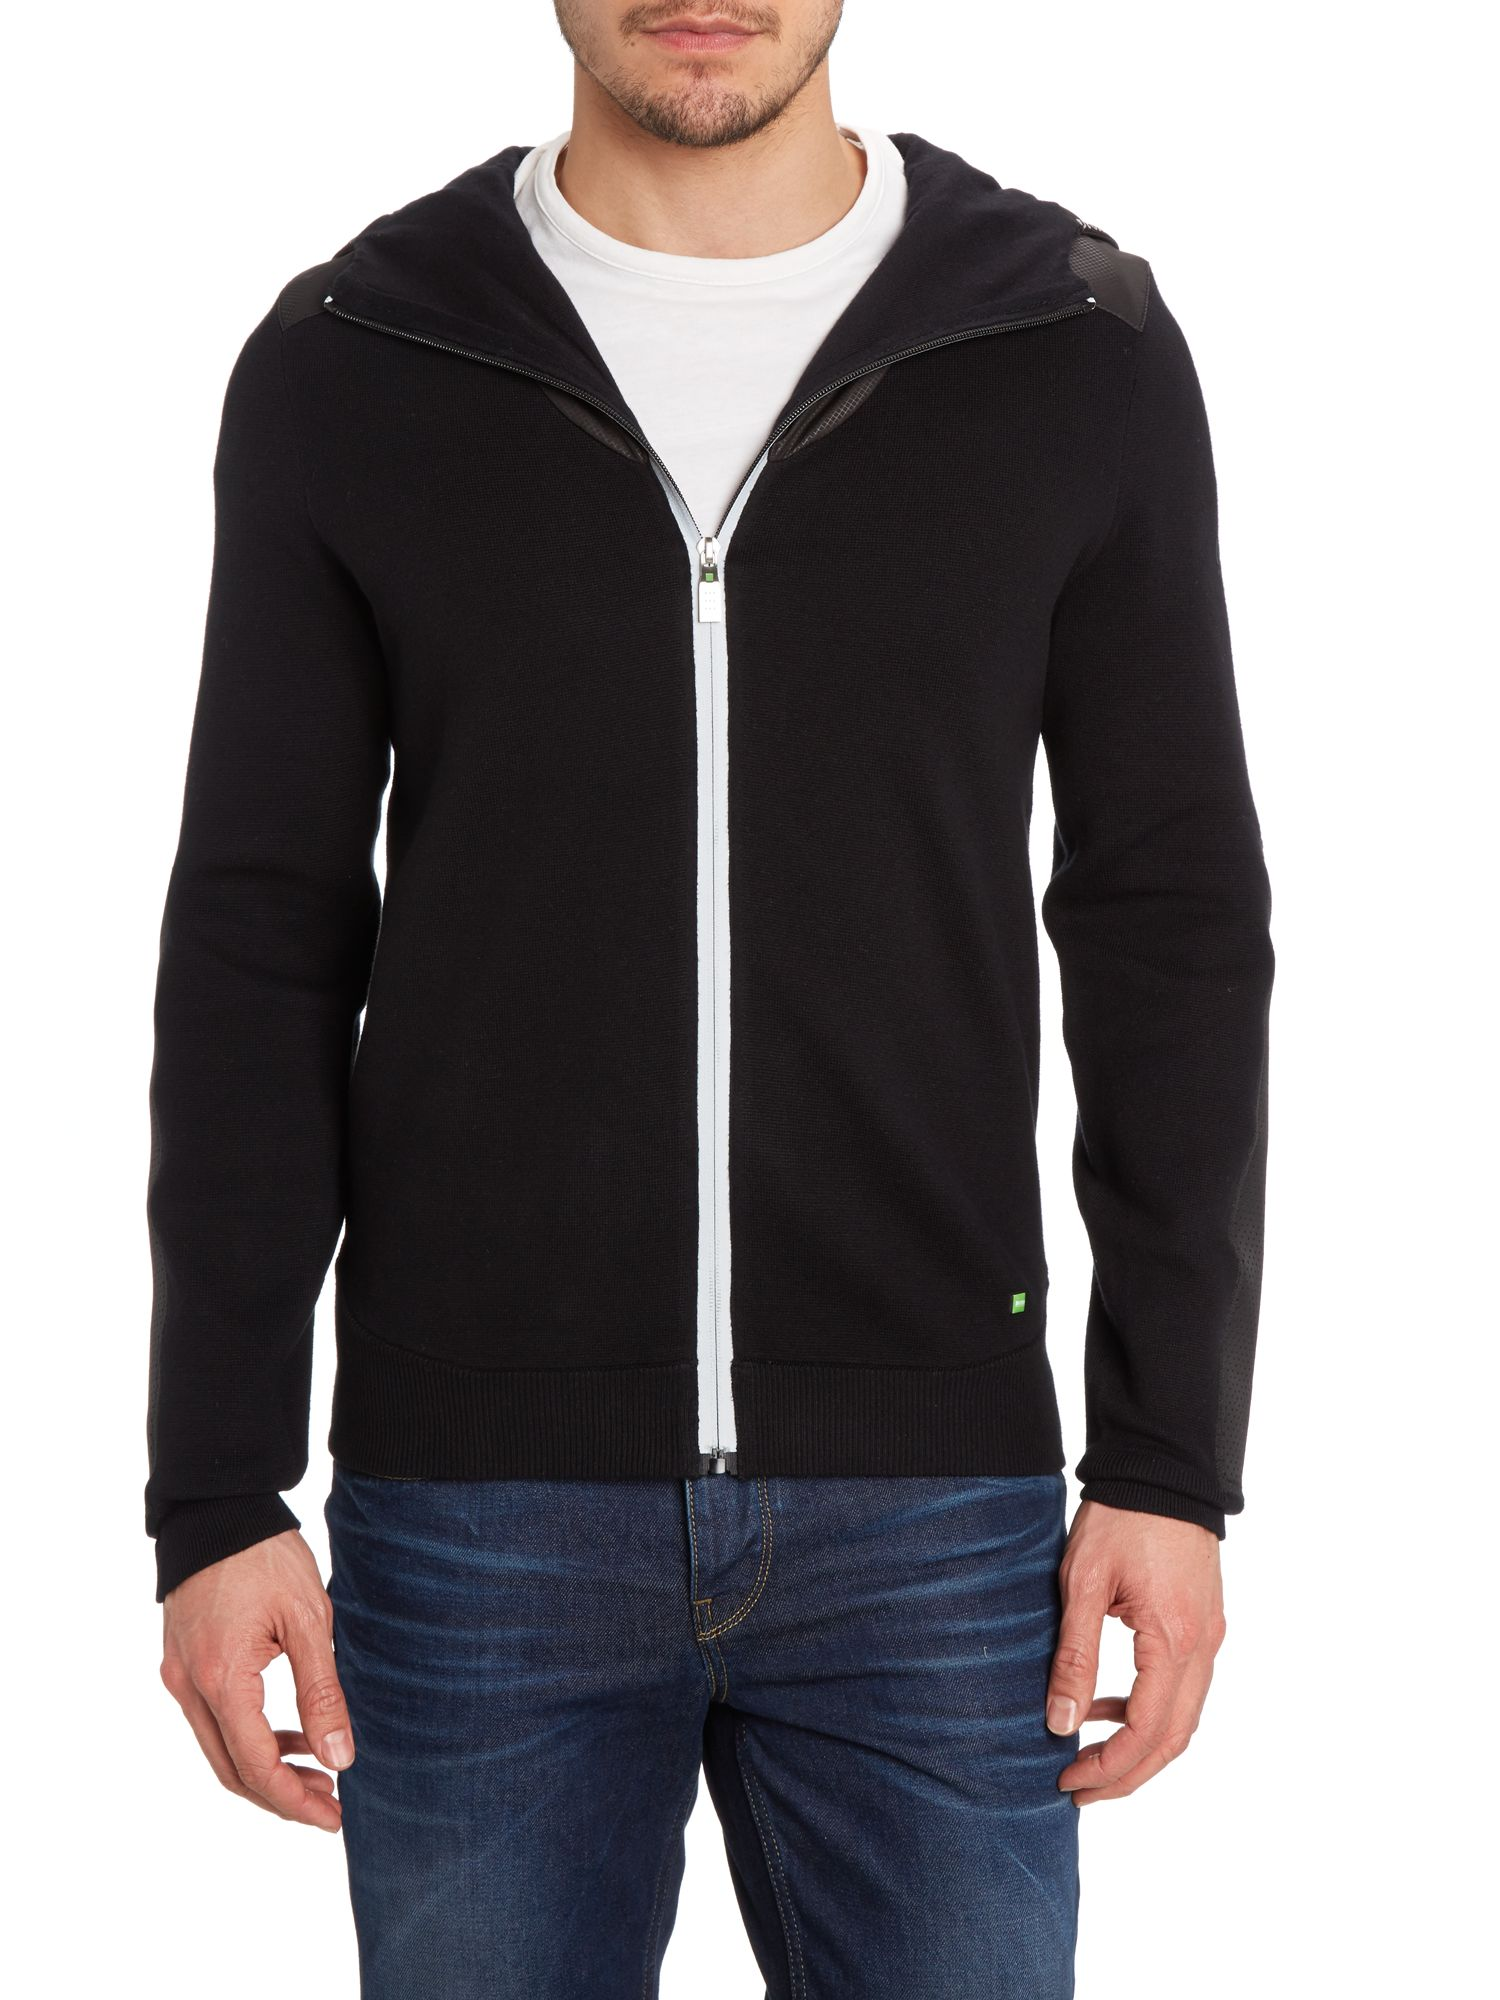 Technical mix hooded jumper